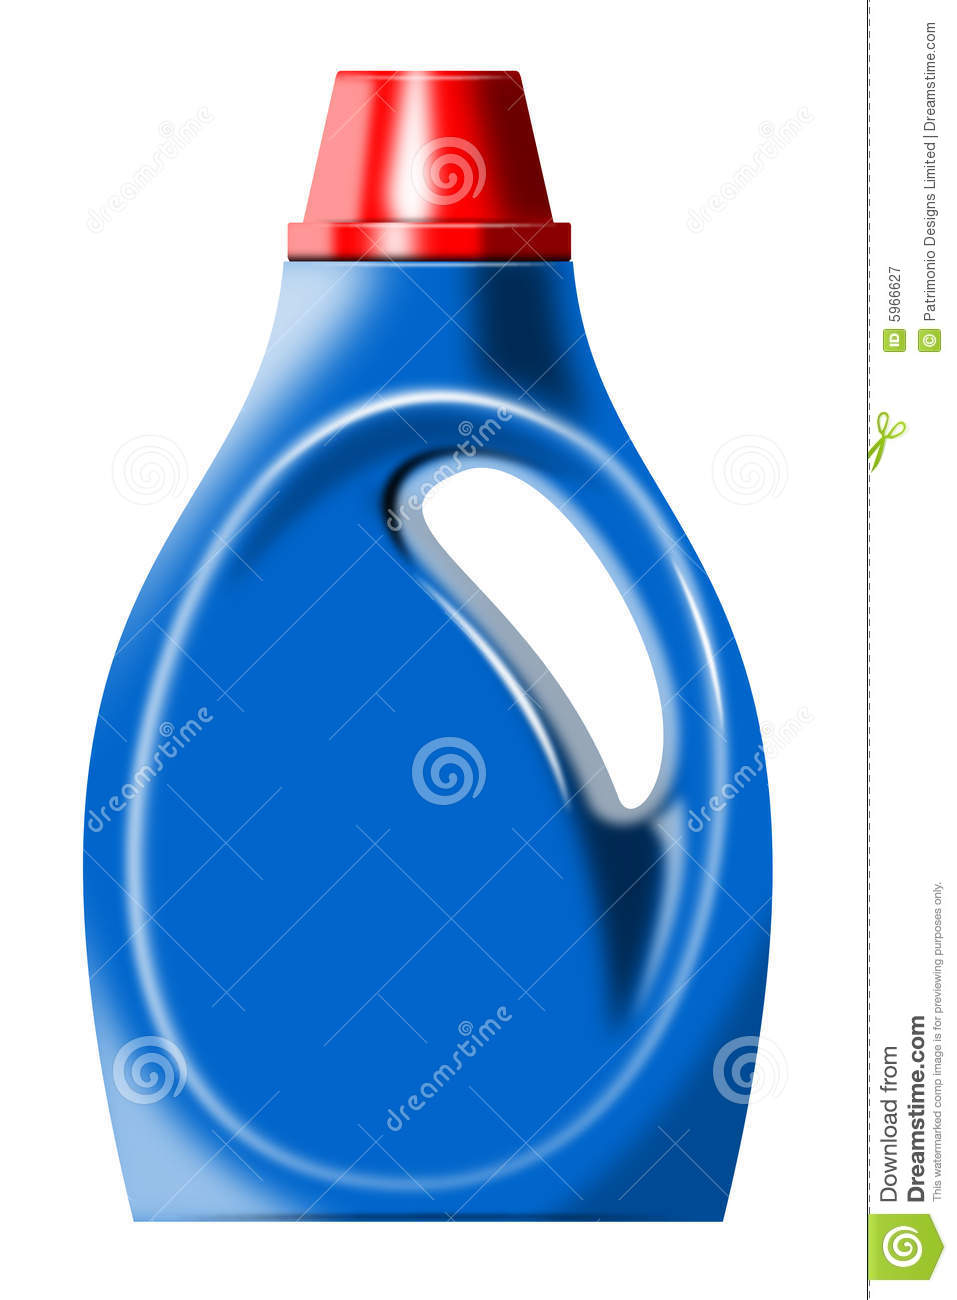 Laundry Detergent Clipart laundry detergent bottle royalty free stock photography - image